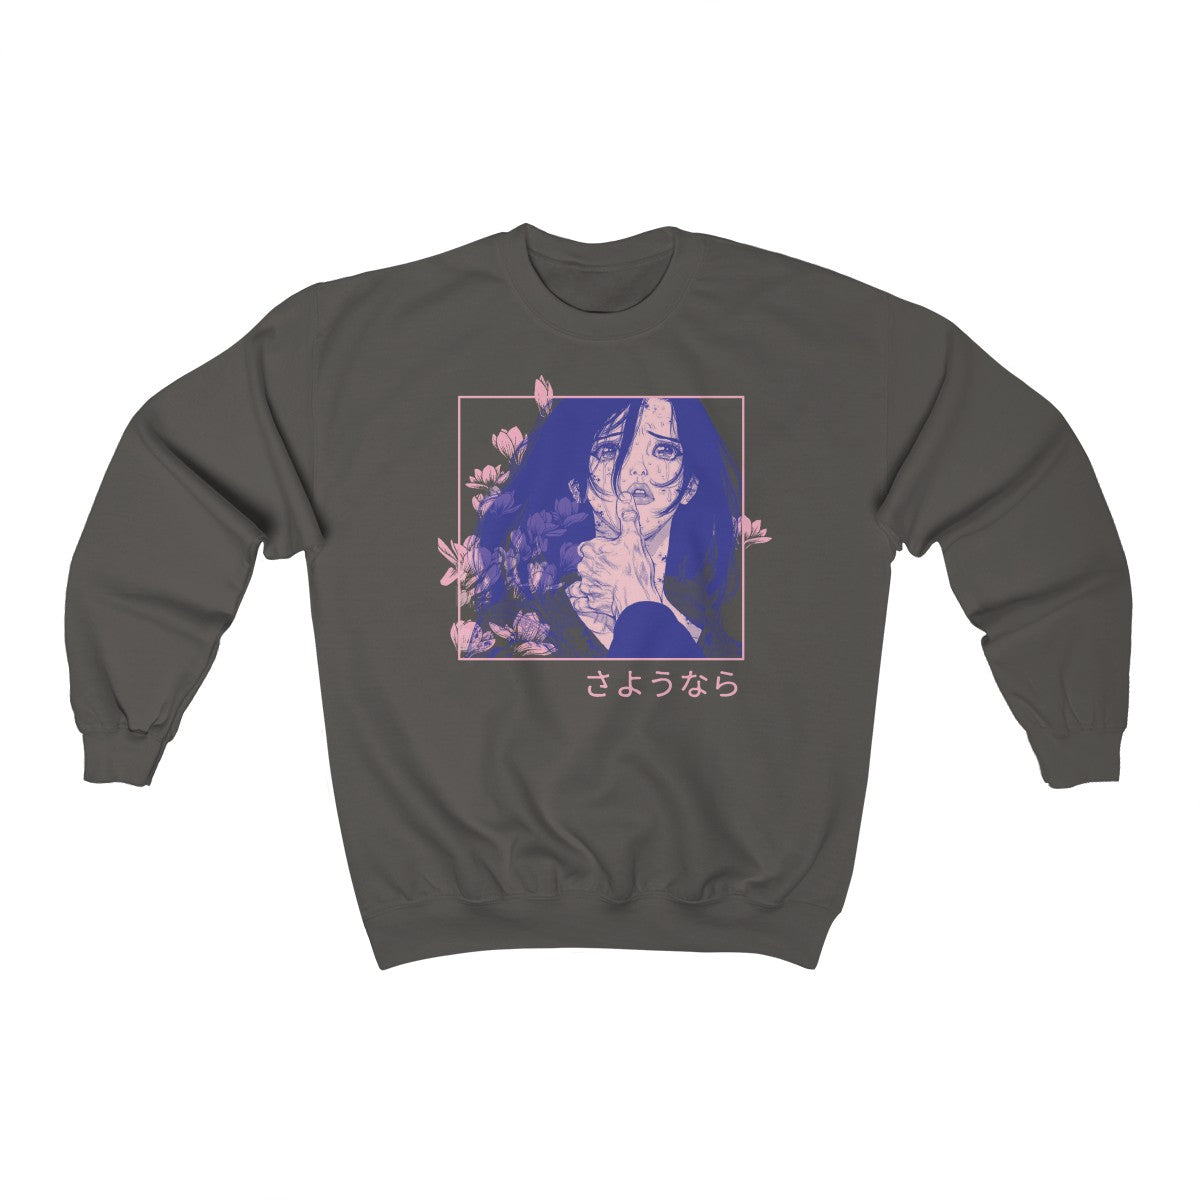 Goodbye – Sad Anime Aesthetic Crewneck Sweatshirt